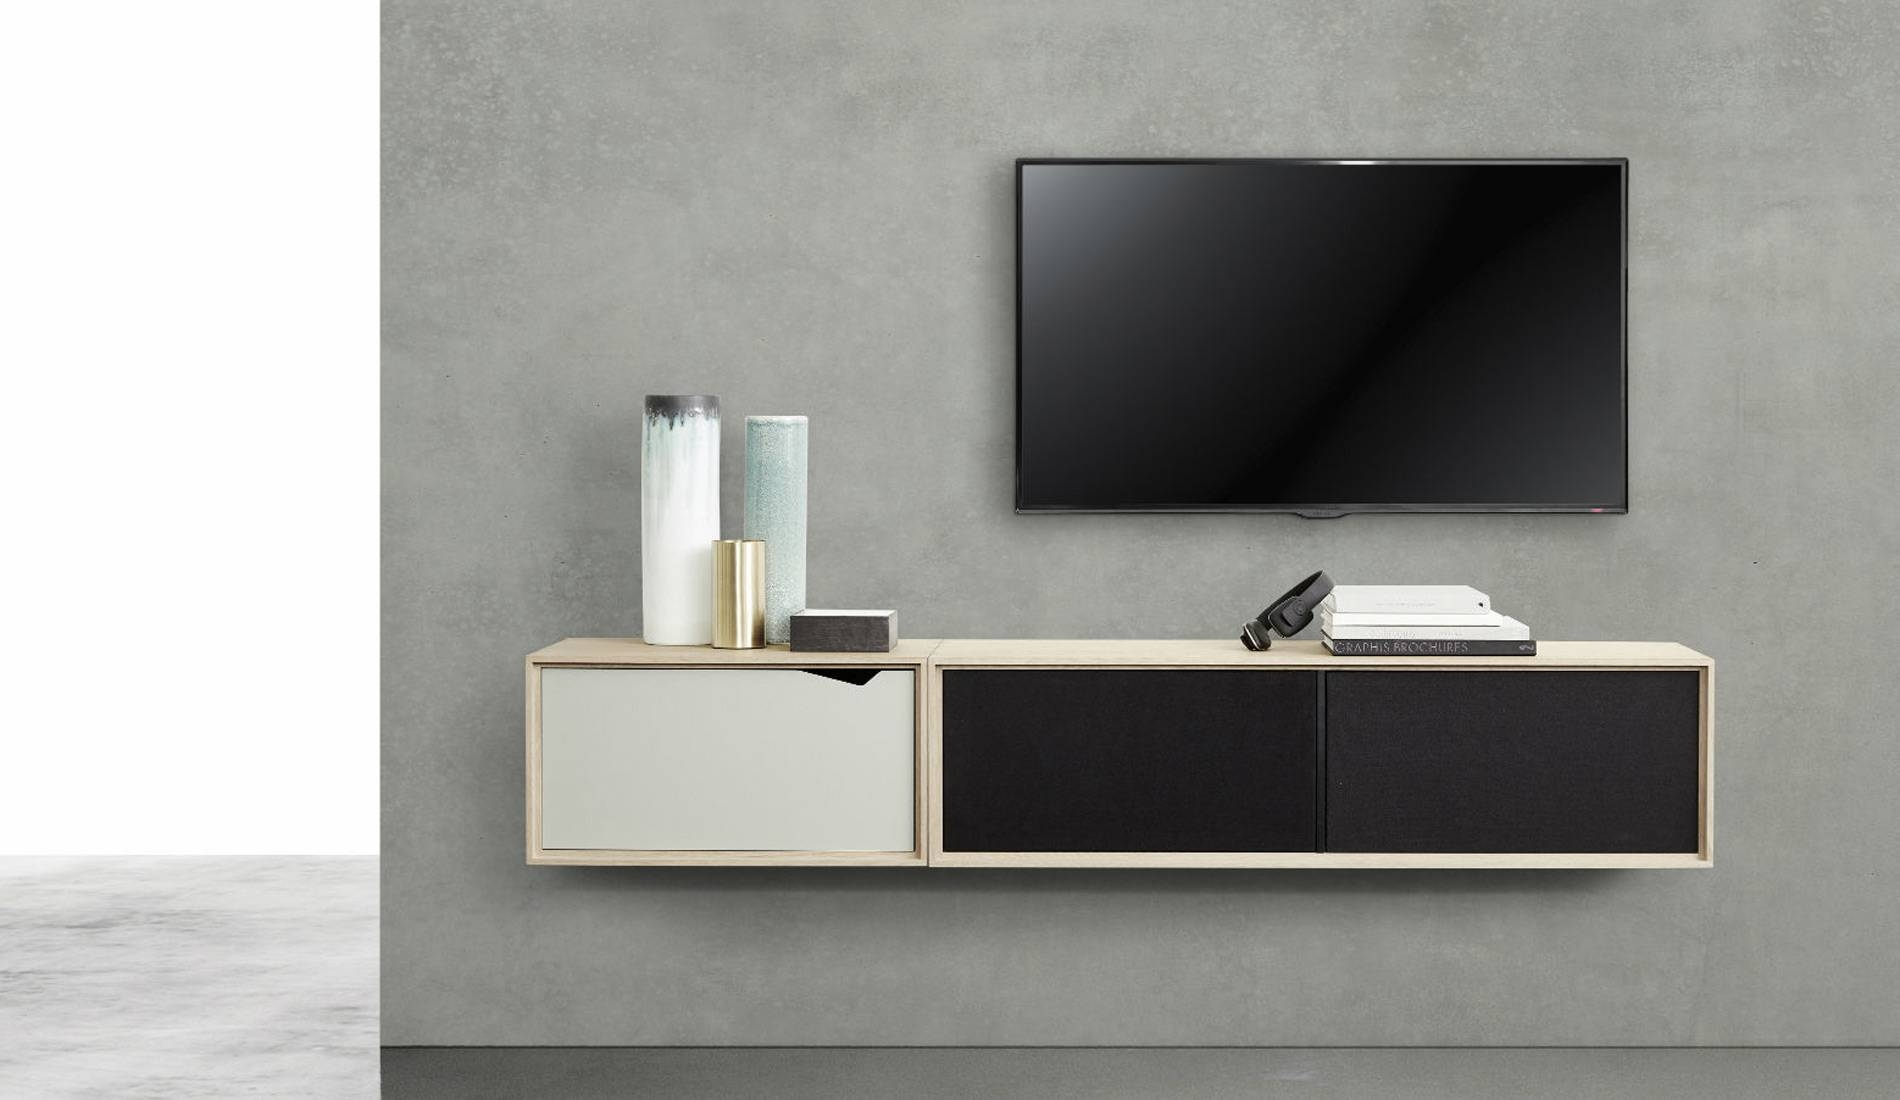 Andersen S2 Tv Sideboard | Dopo Domani regarding Tv Sideboards (Image 5 of 30)